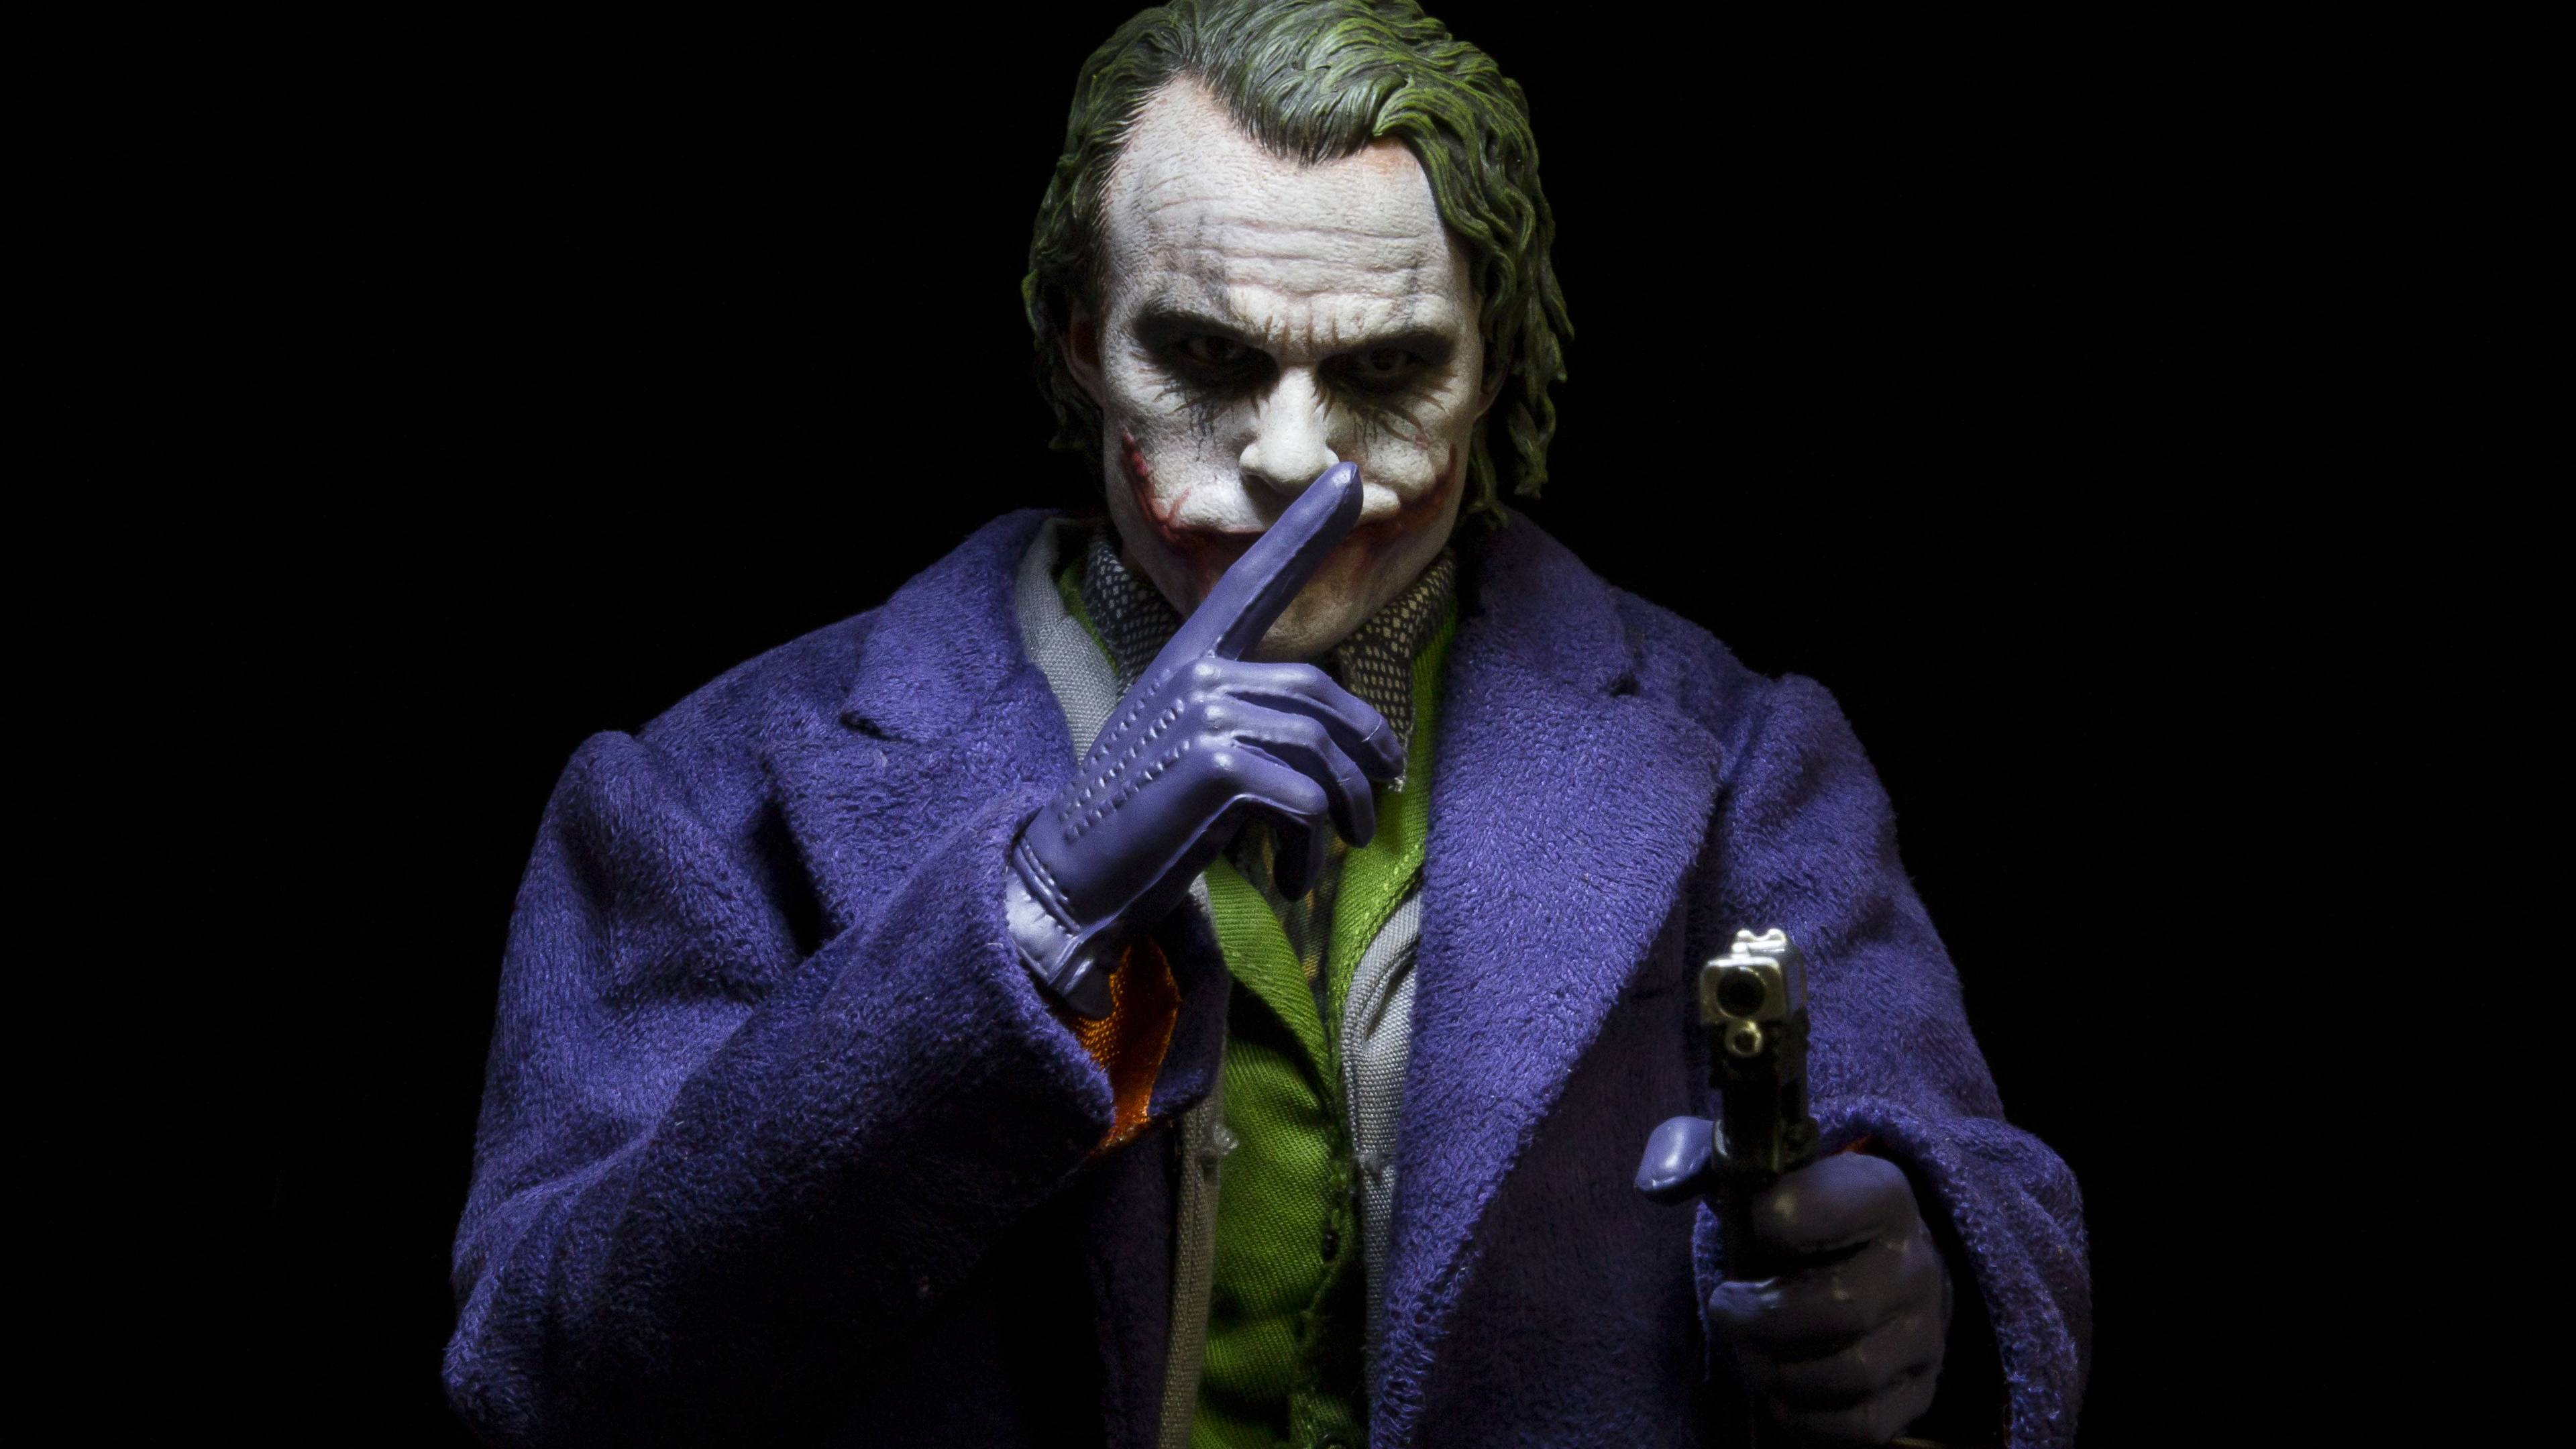 The Joker Wallpapers Hd Posted By Ryan Walker